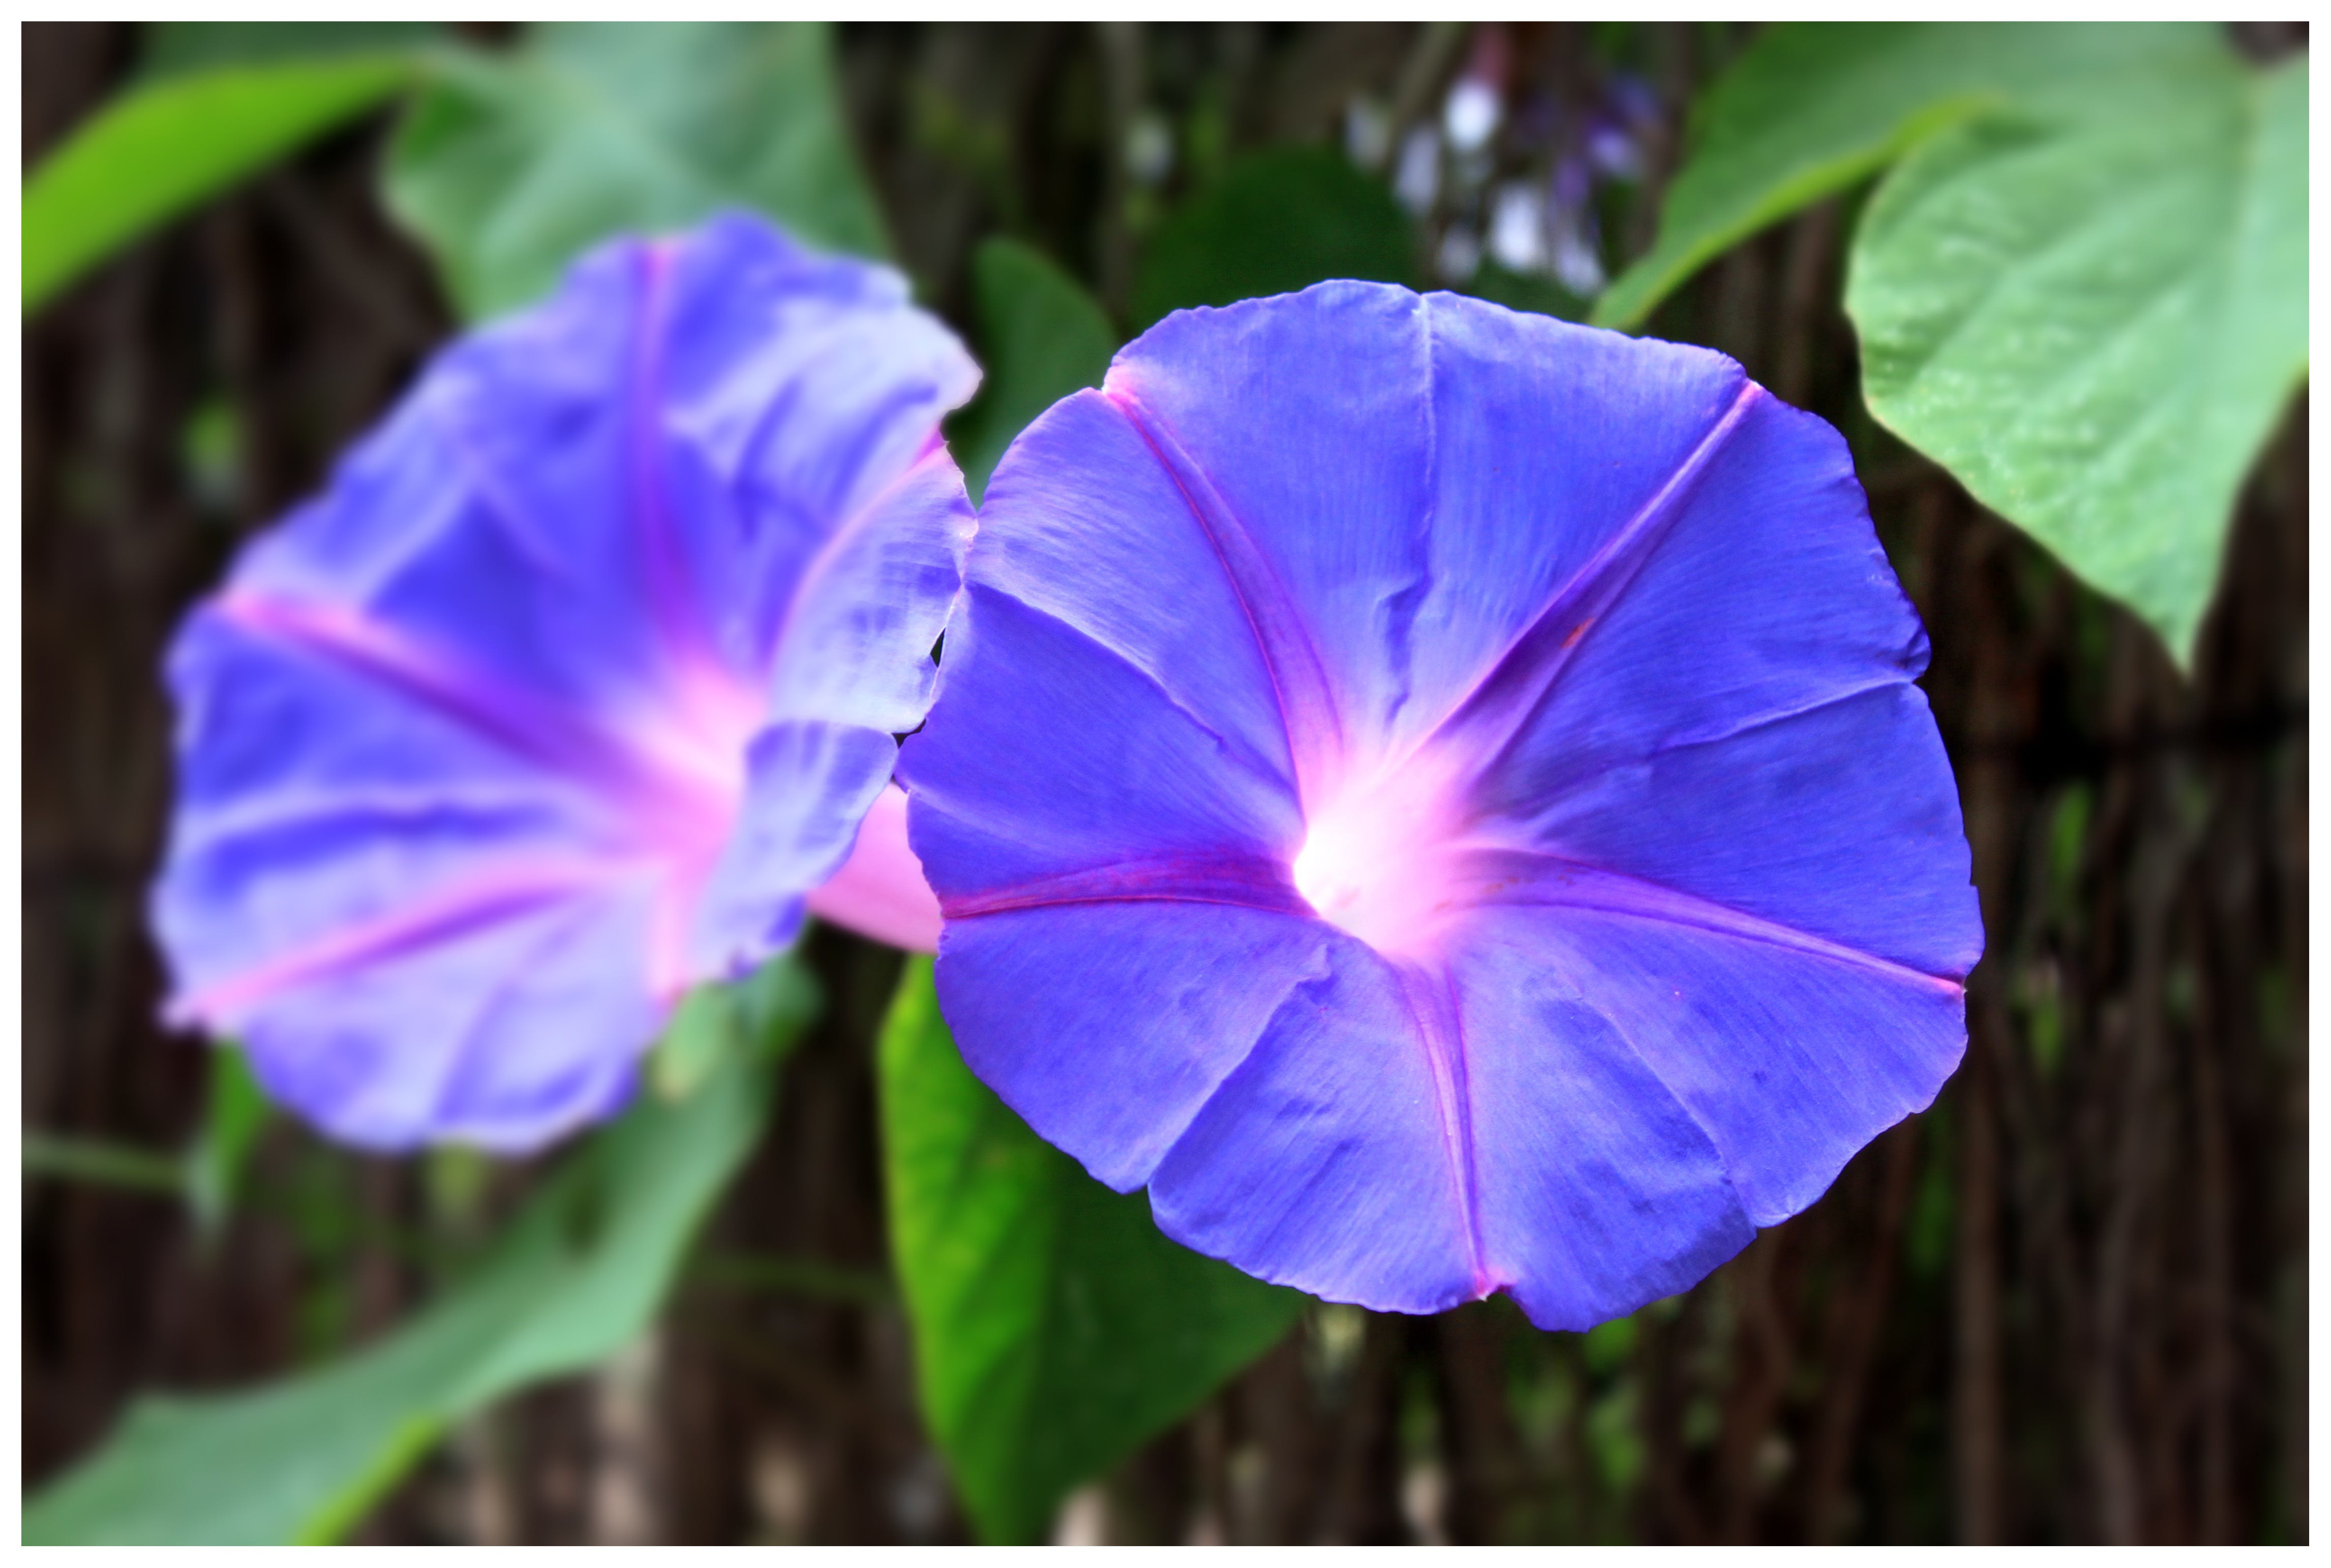 2 Blue Flowers during Daytime